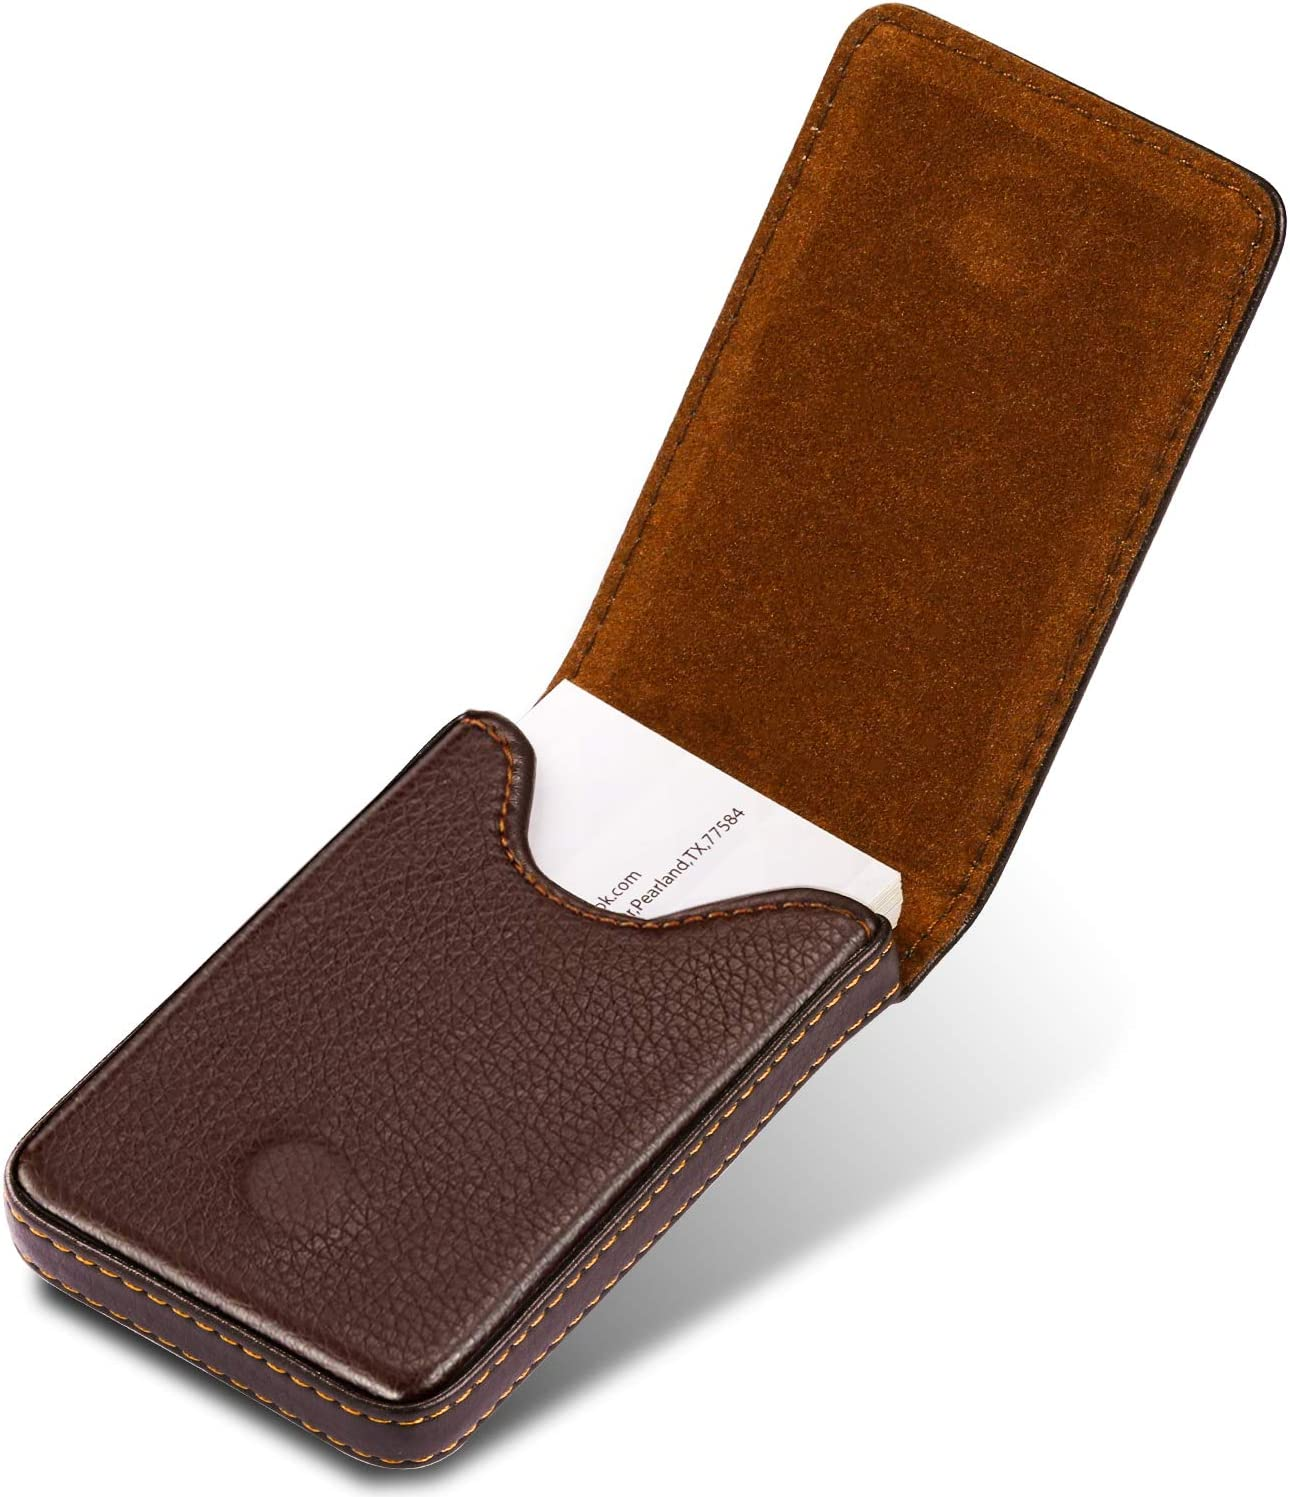 MaxGear Leather Business Card High order High quality new Men Holder Case for